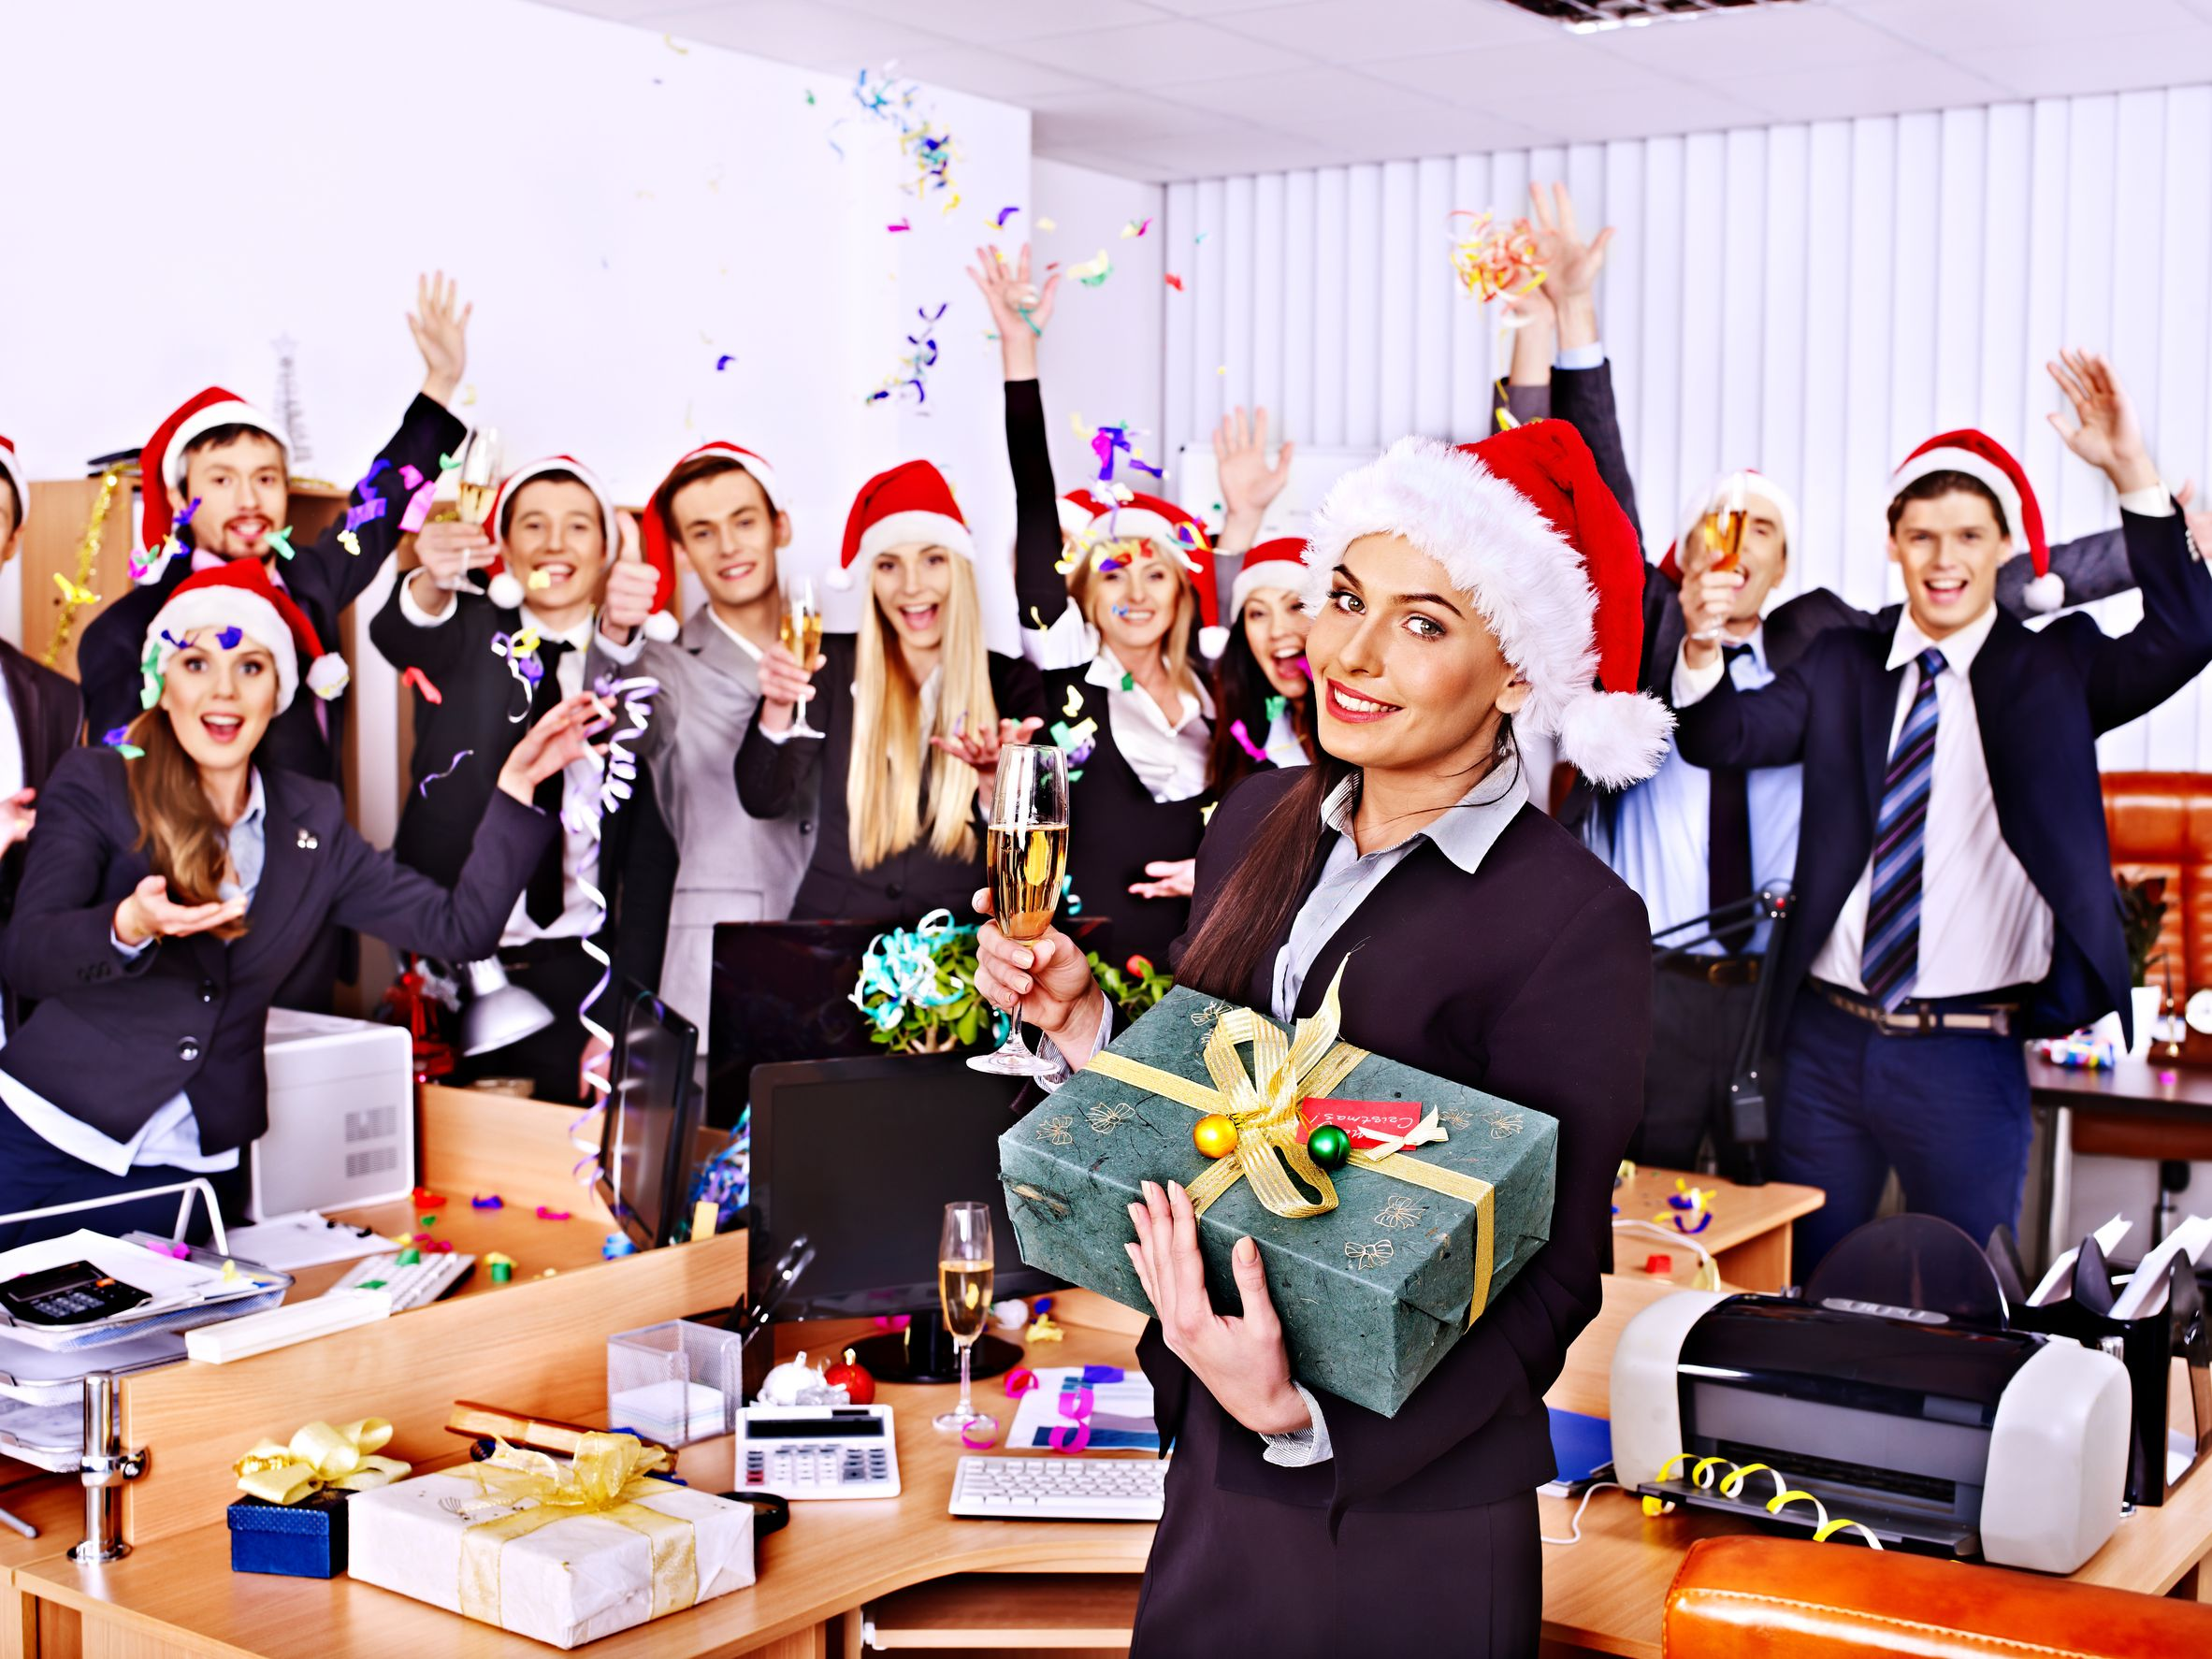 Marvelous Works Christmas Party Ideas Part - 8: Office Holiday Party